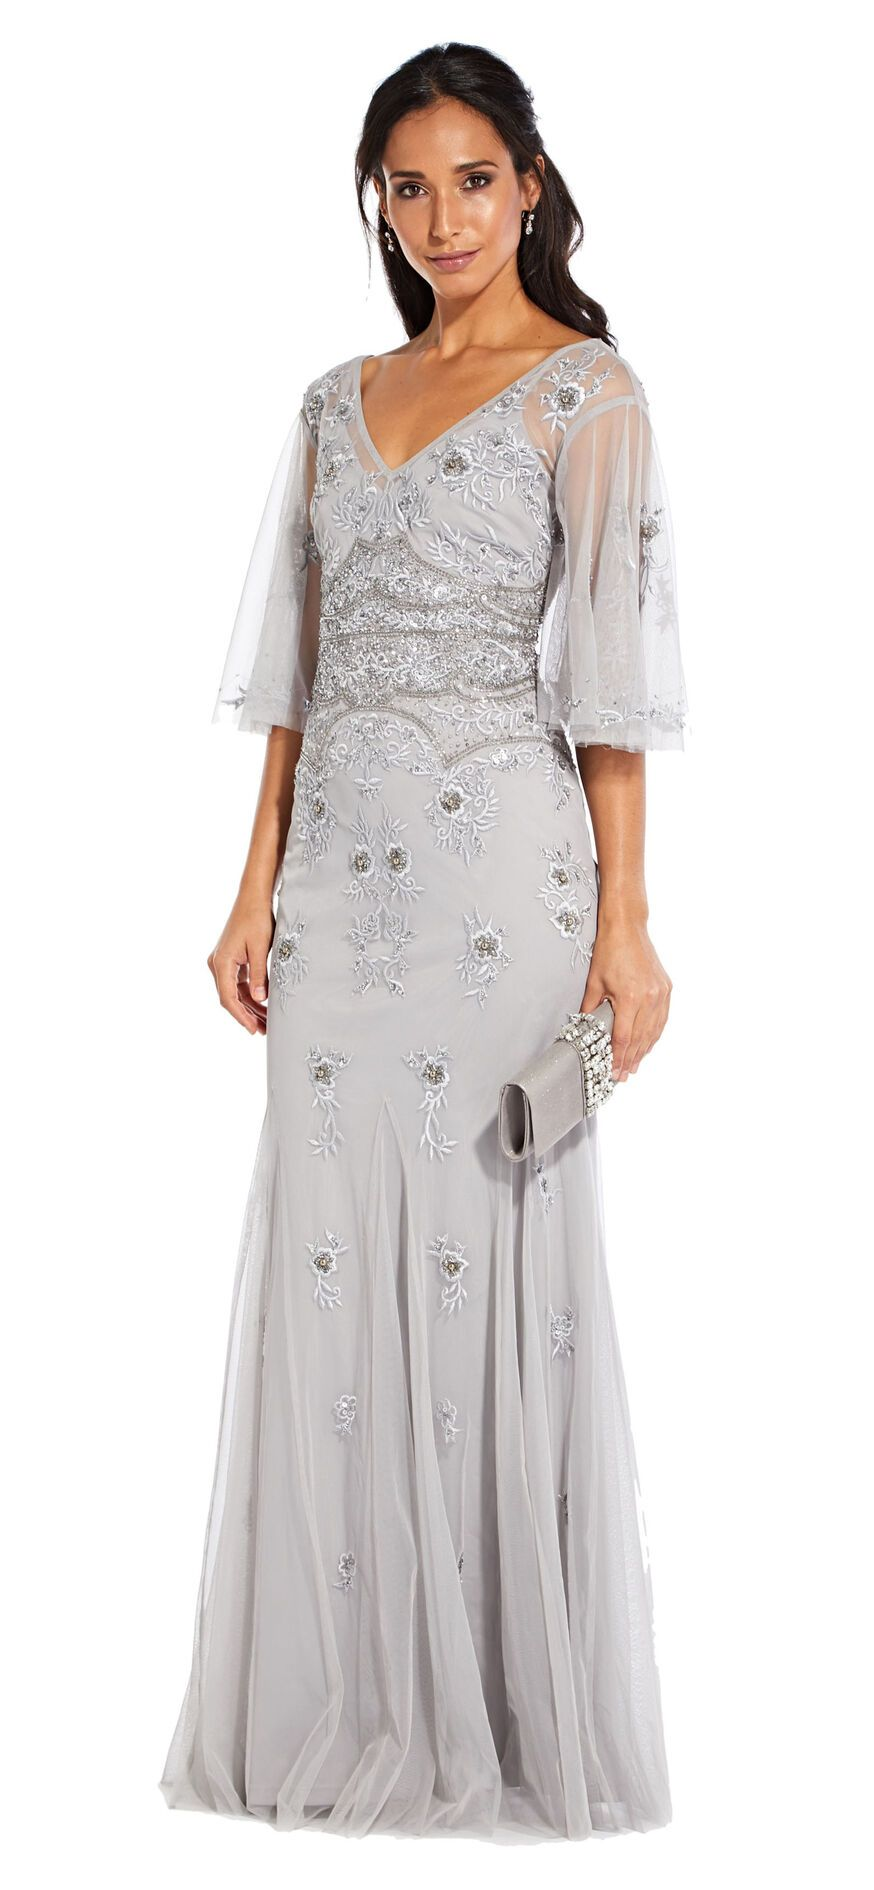 Floral Beaded Gown with Sheer Flutter Sleeves Beaded